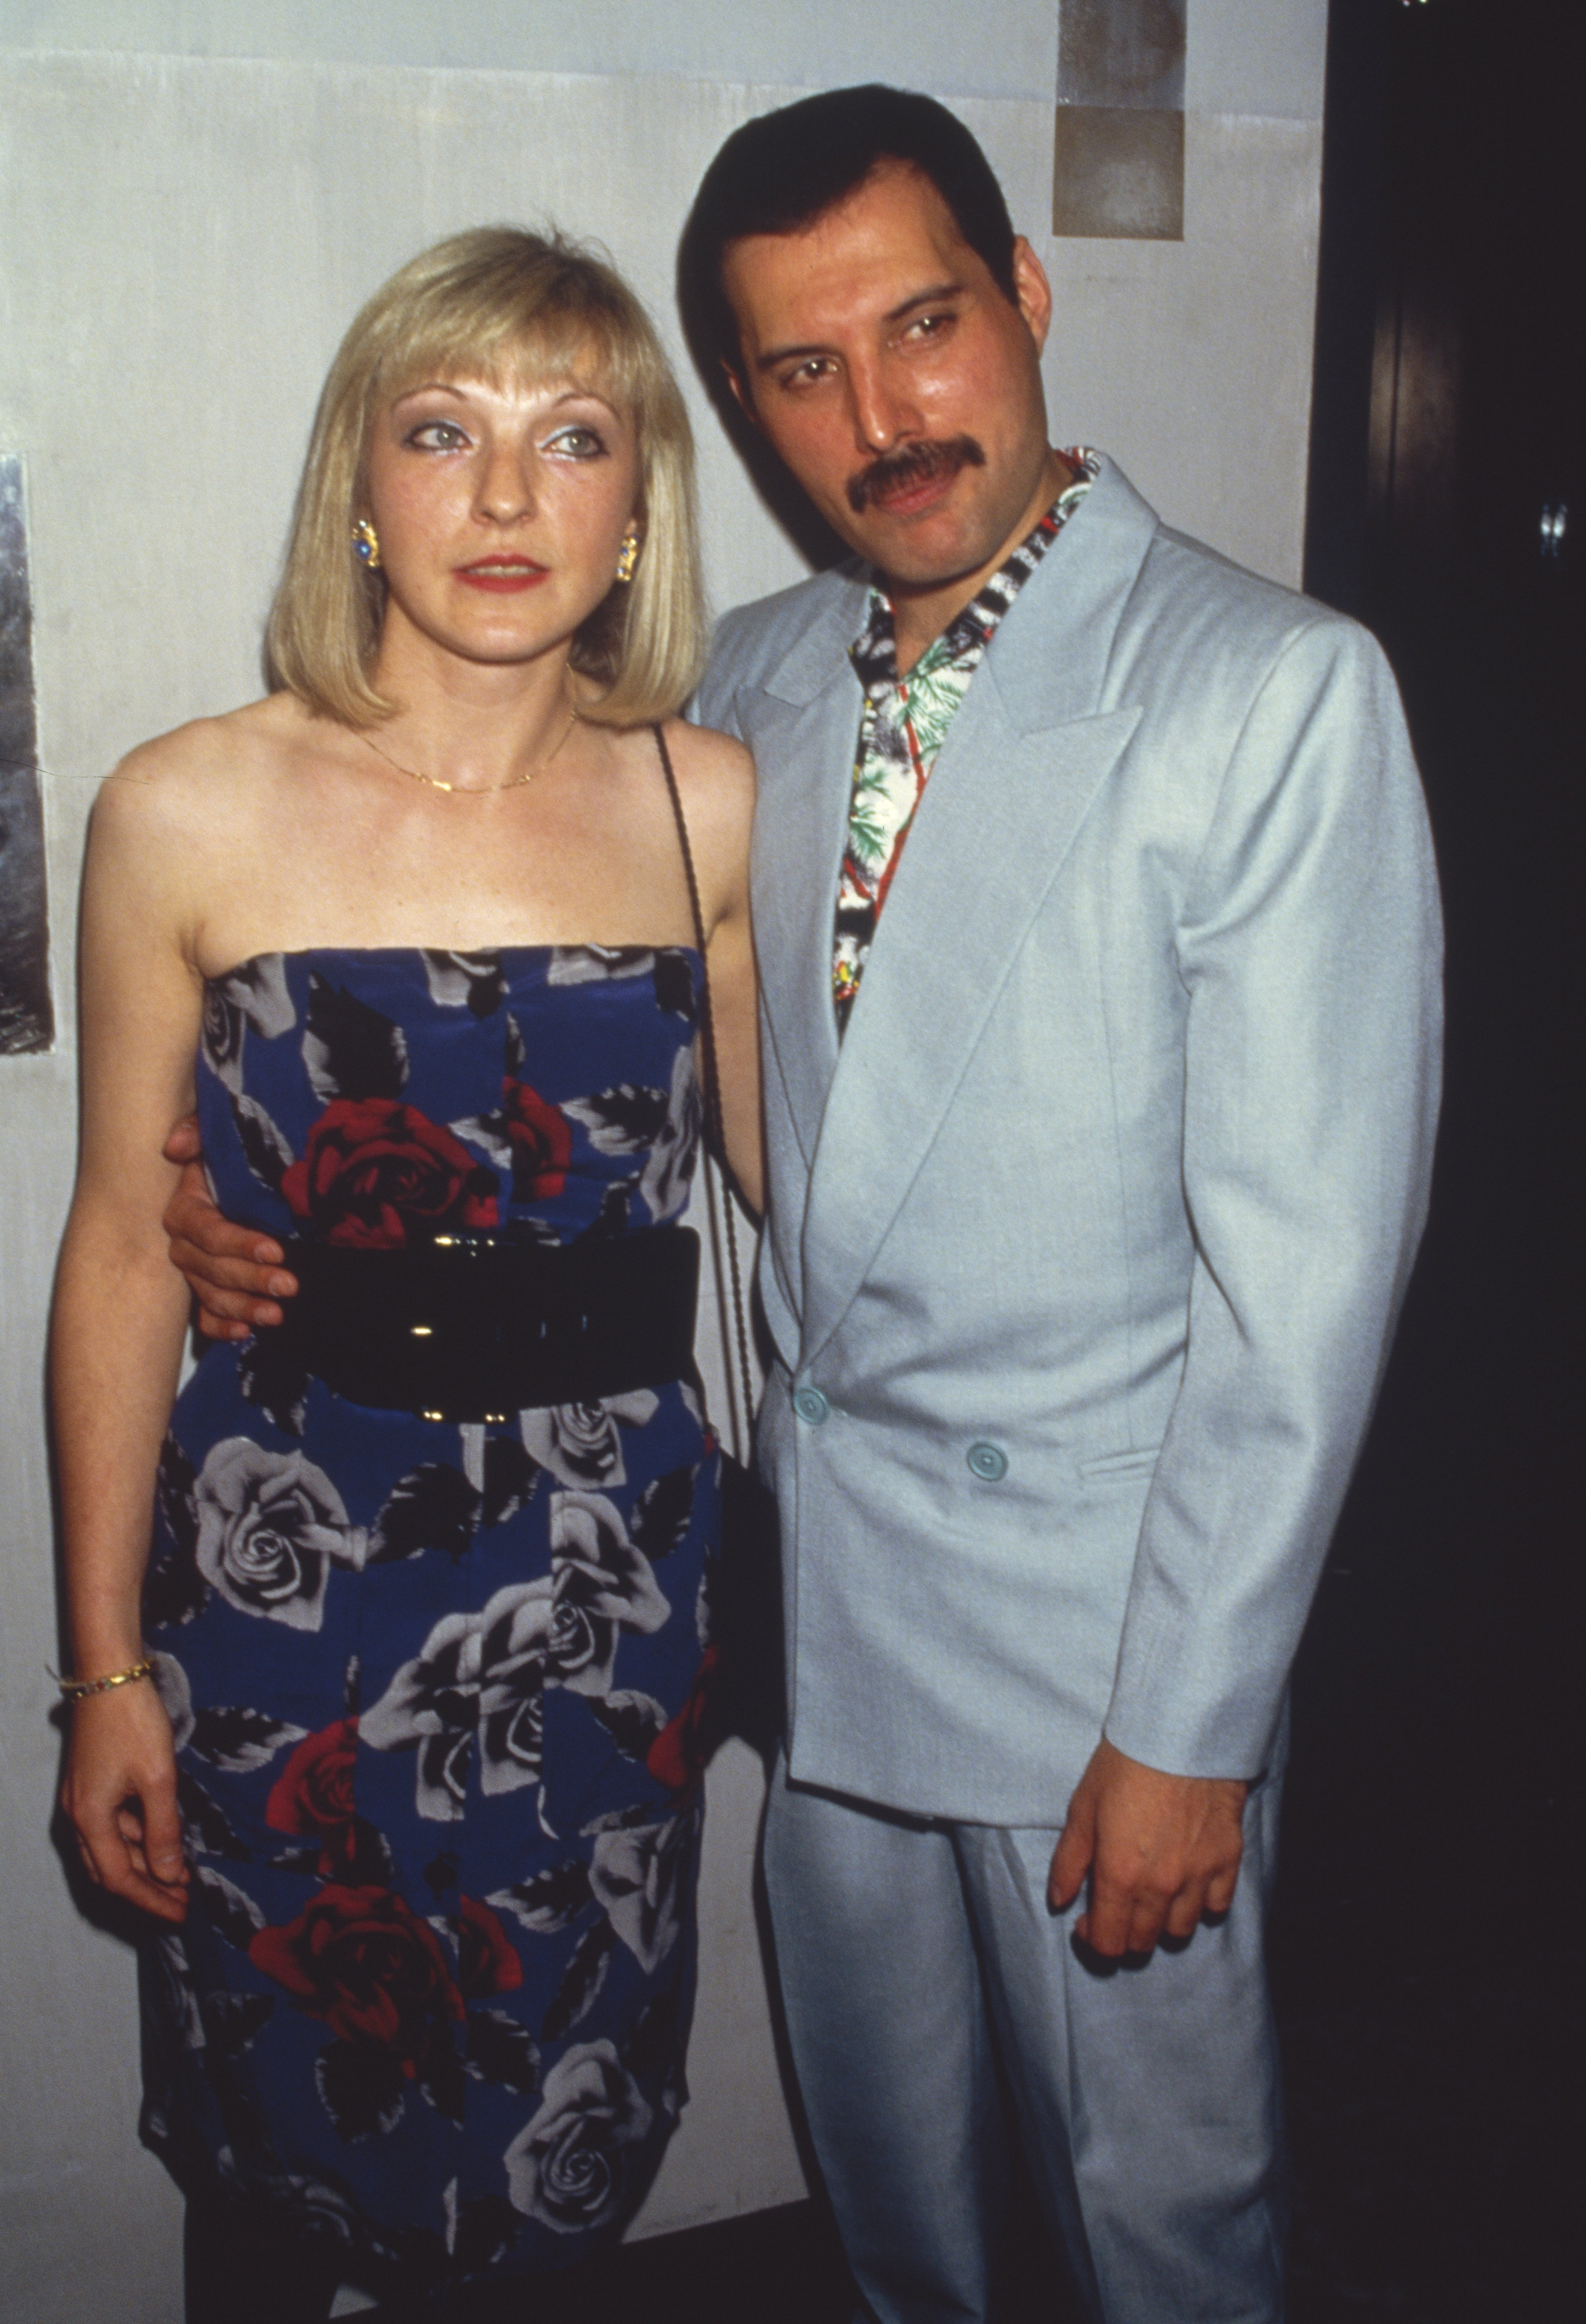 Freddie Mercury with his friend Mary Austin at an after-party for Queen's Wembley concerts, Kensington Roof Gardens, London, 12th July 1986. | Photo: GettyImages